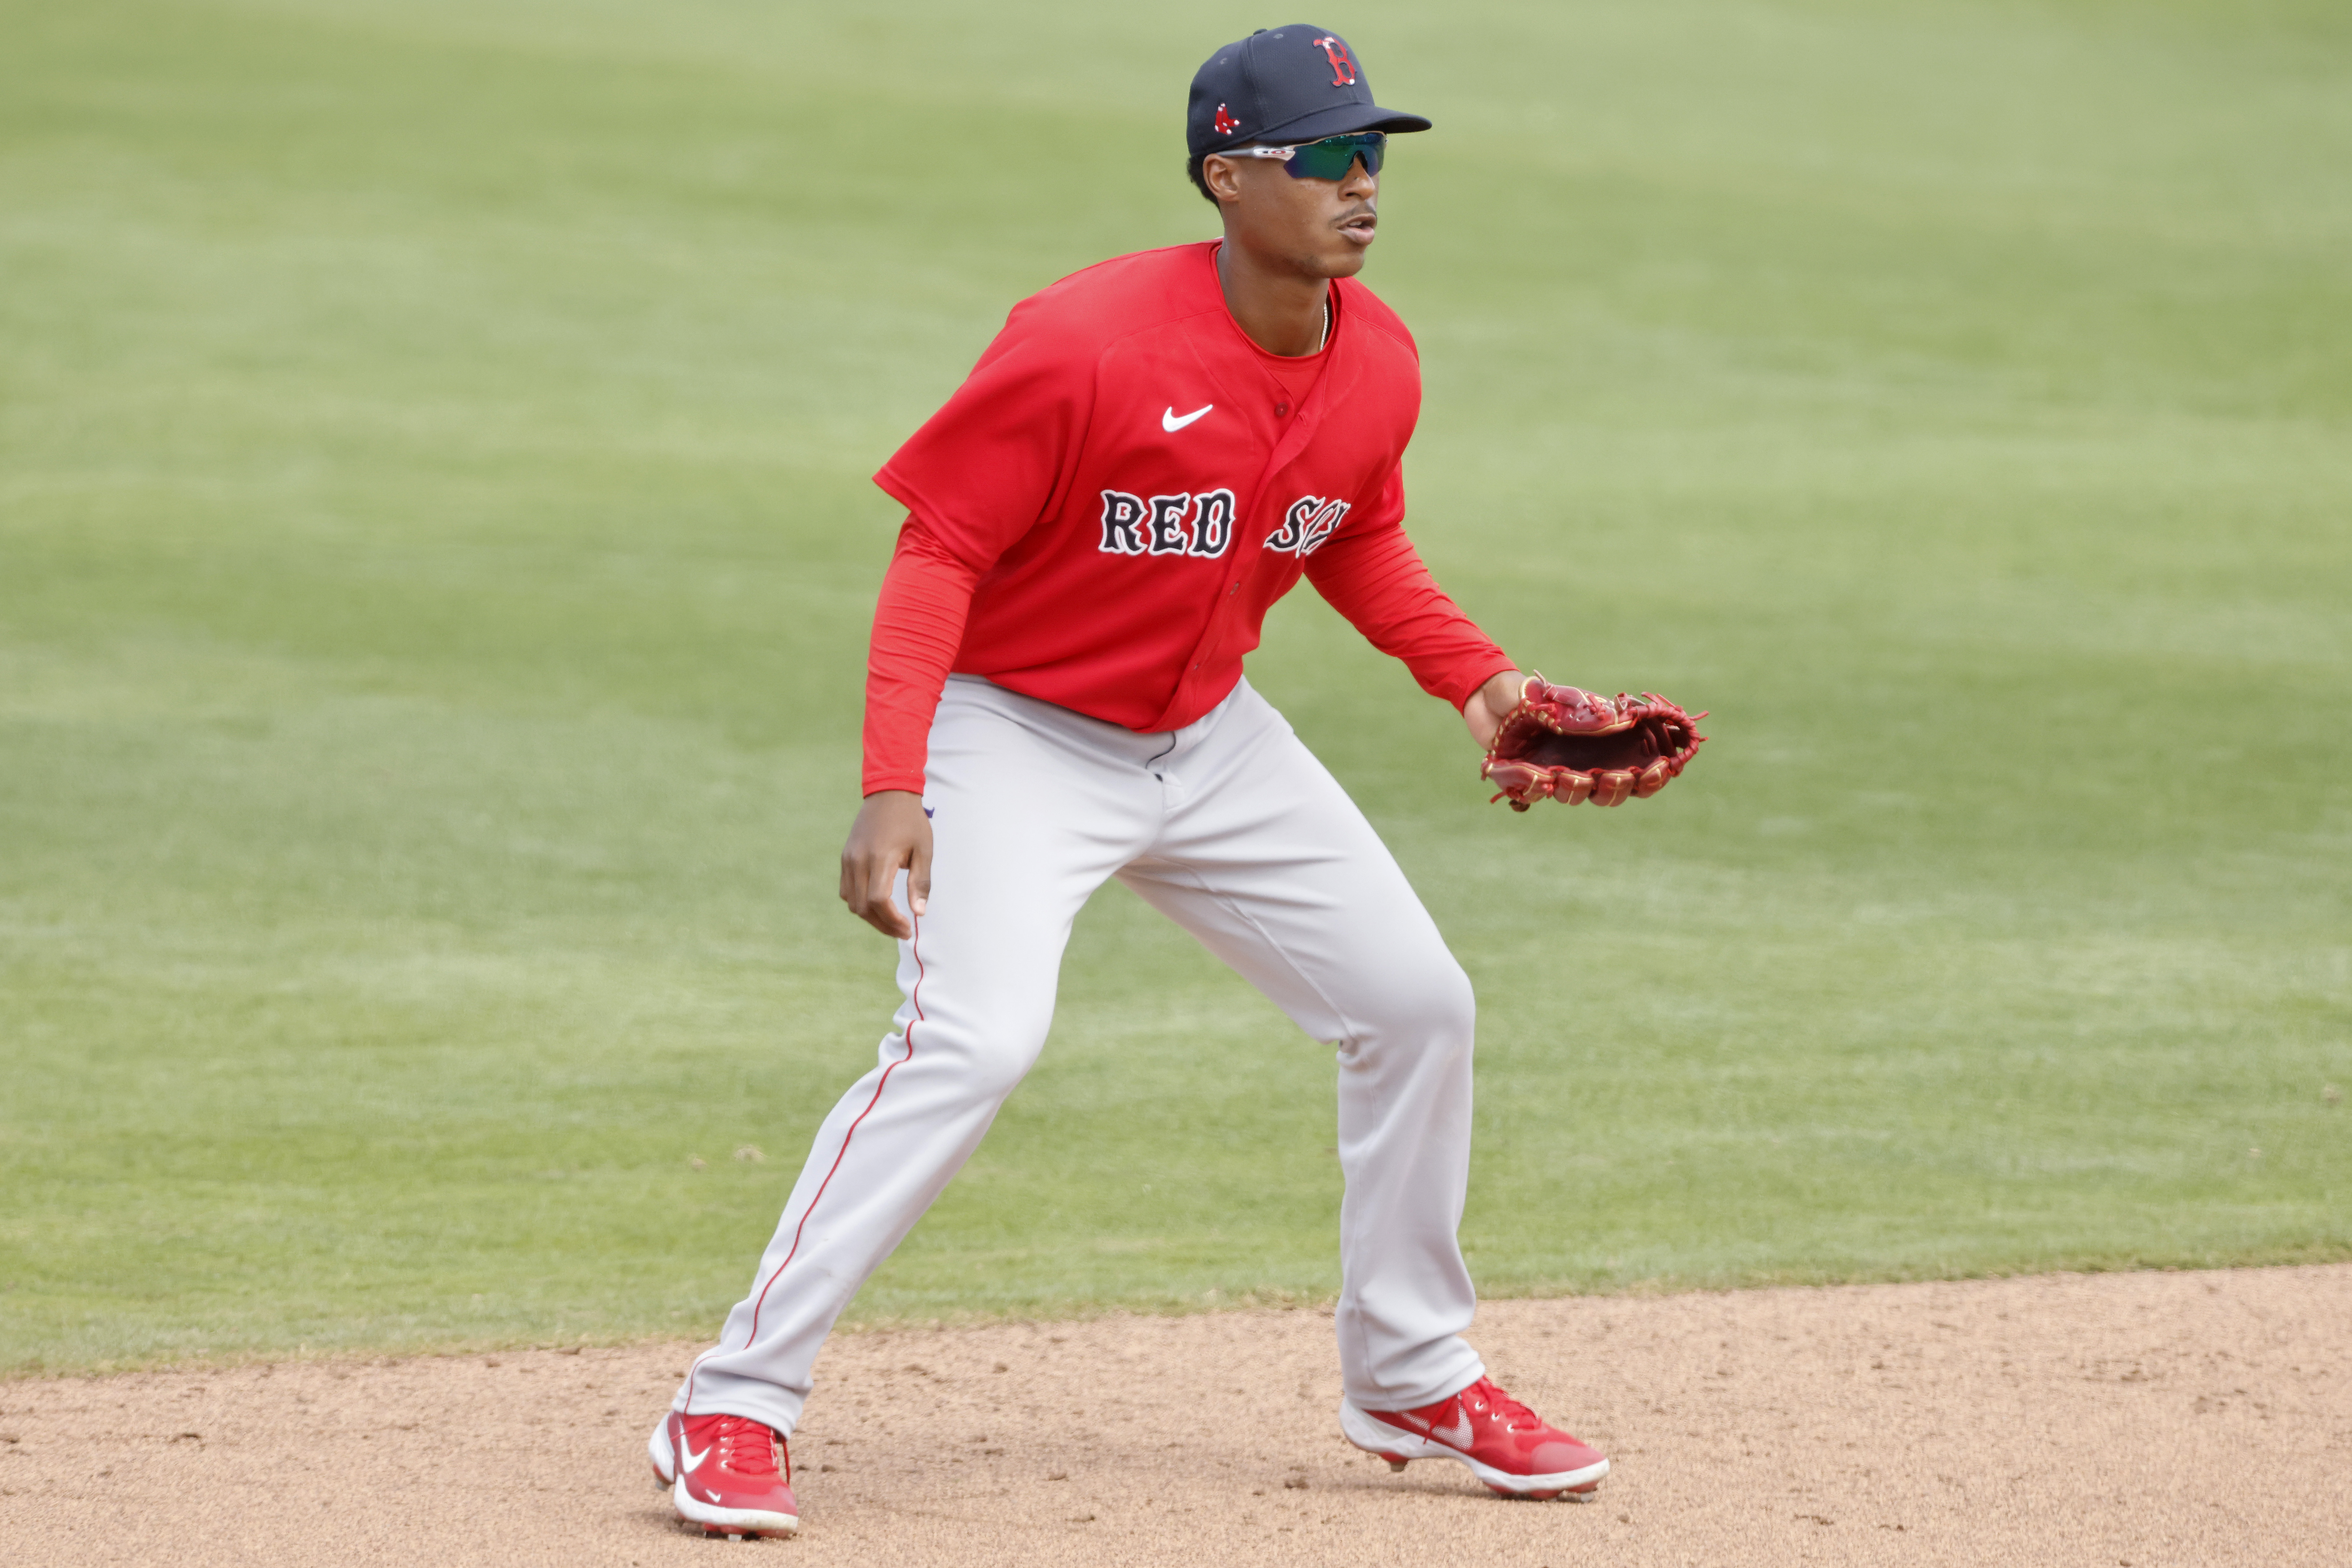 Jeter Downs #20 of the Boston Red Sox in action against the Minnesota Twins during a Grapefruit League spring training game at Hammond Stadium on March 14, 2021 in Fort Myers, Florida.